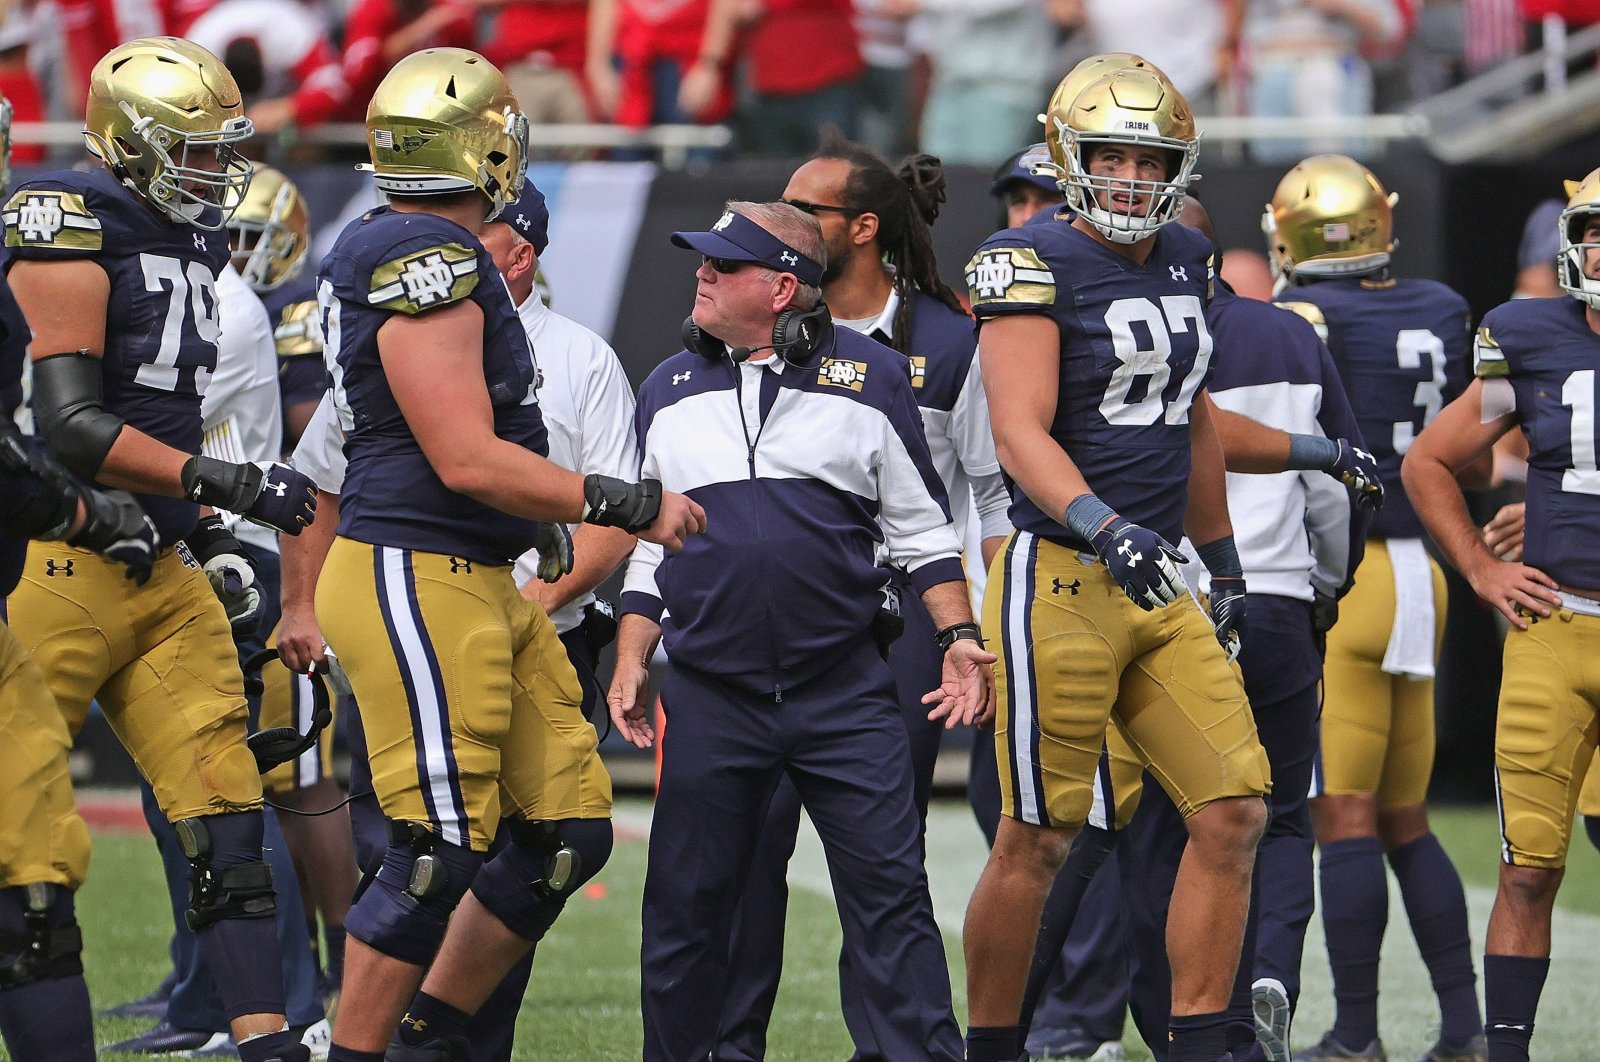 Notre Dame head coach Brian Kelly (C) talks to members of his team after a turnover against the Wisconsin Badgers at Soldier Field, Chicago, Illinois, U.S., Sept. 25, 2021. (AFP Photo)